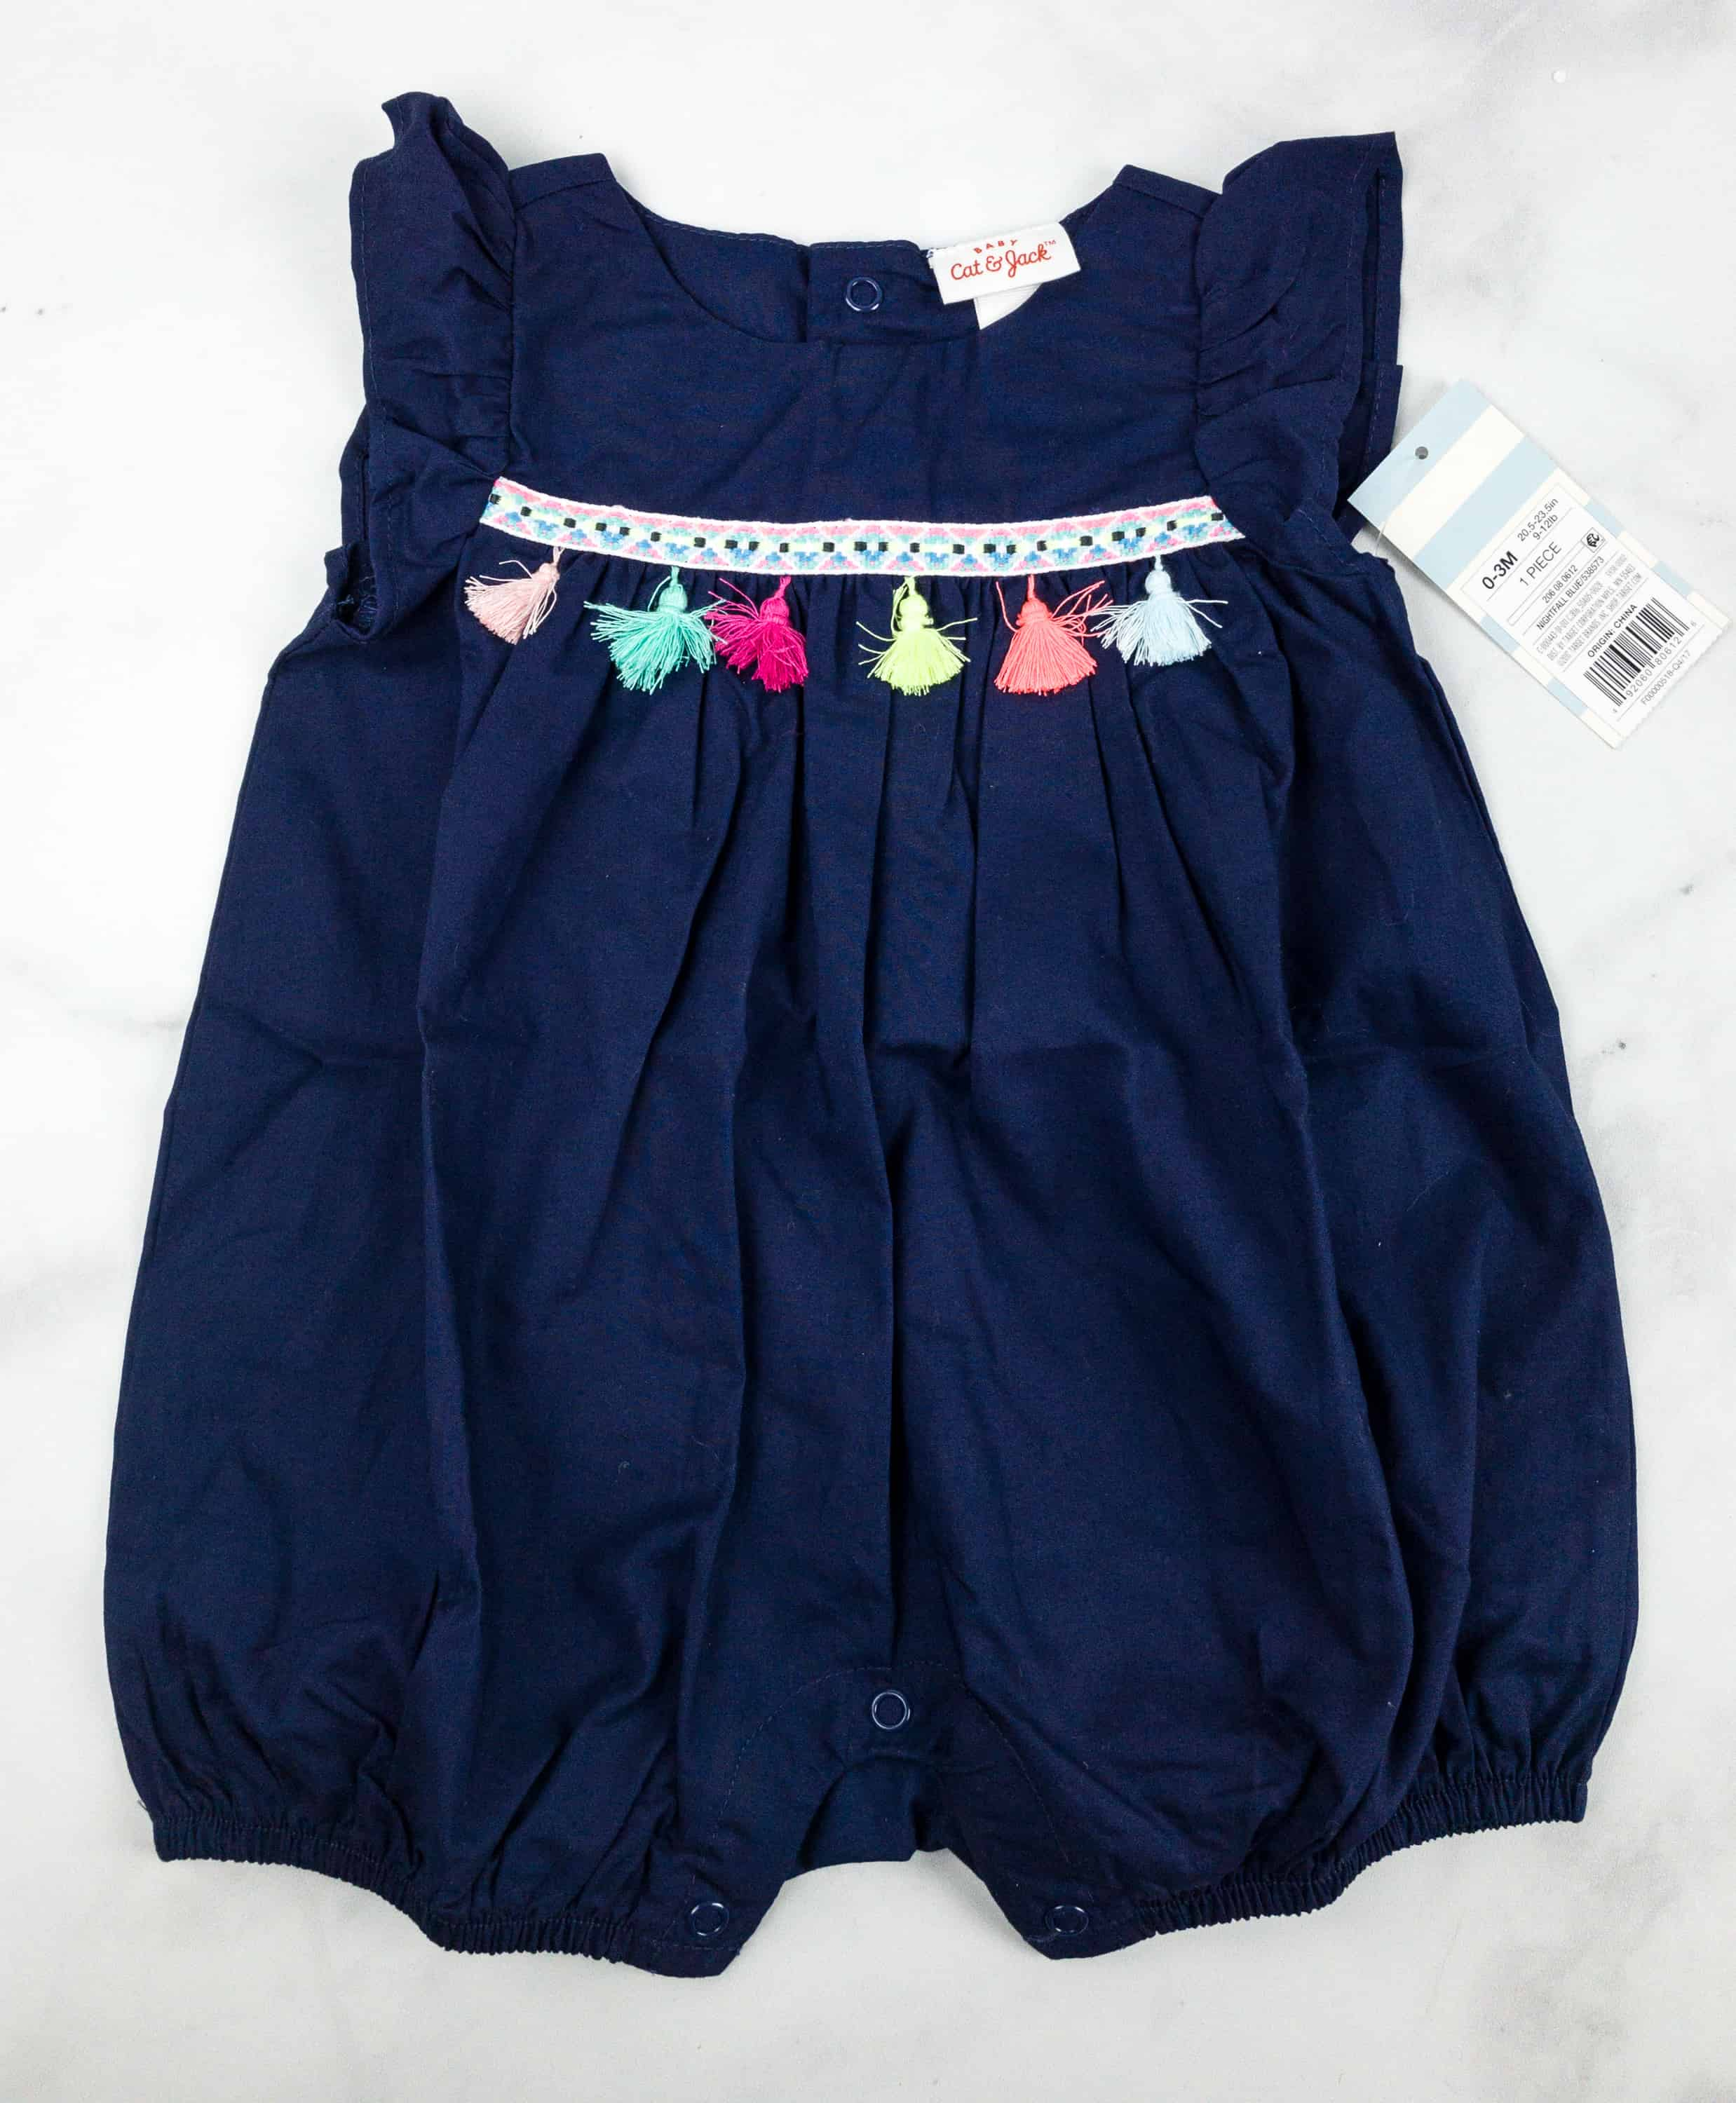 2a41925a18c6 Cat   Jack Baby Girls  Ruffle Sleeve Romper (est  9.99) Rompers are cute  and easy to wear